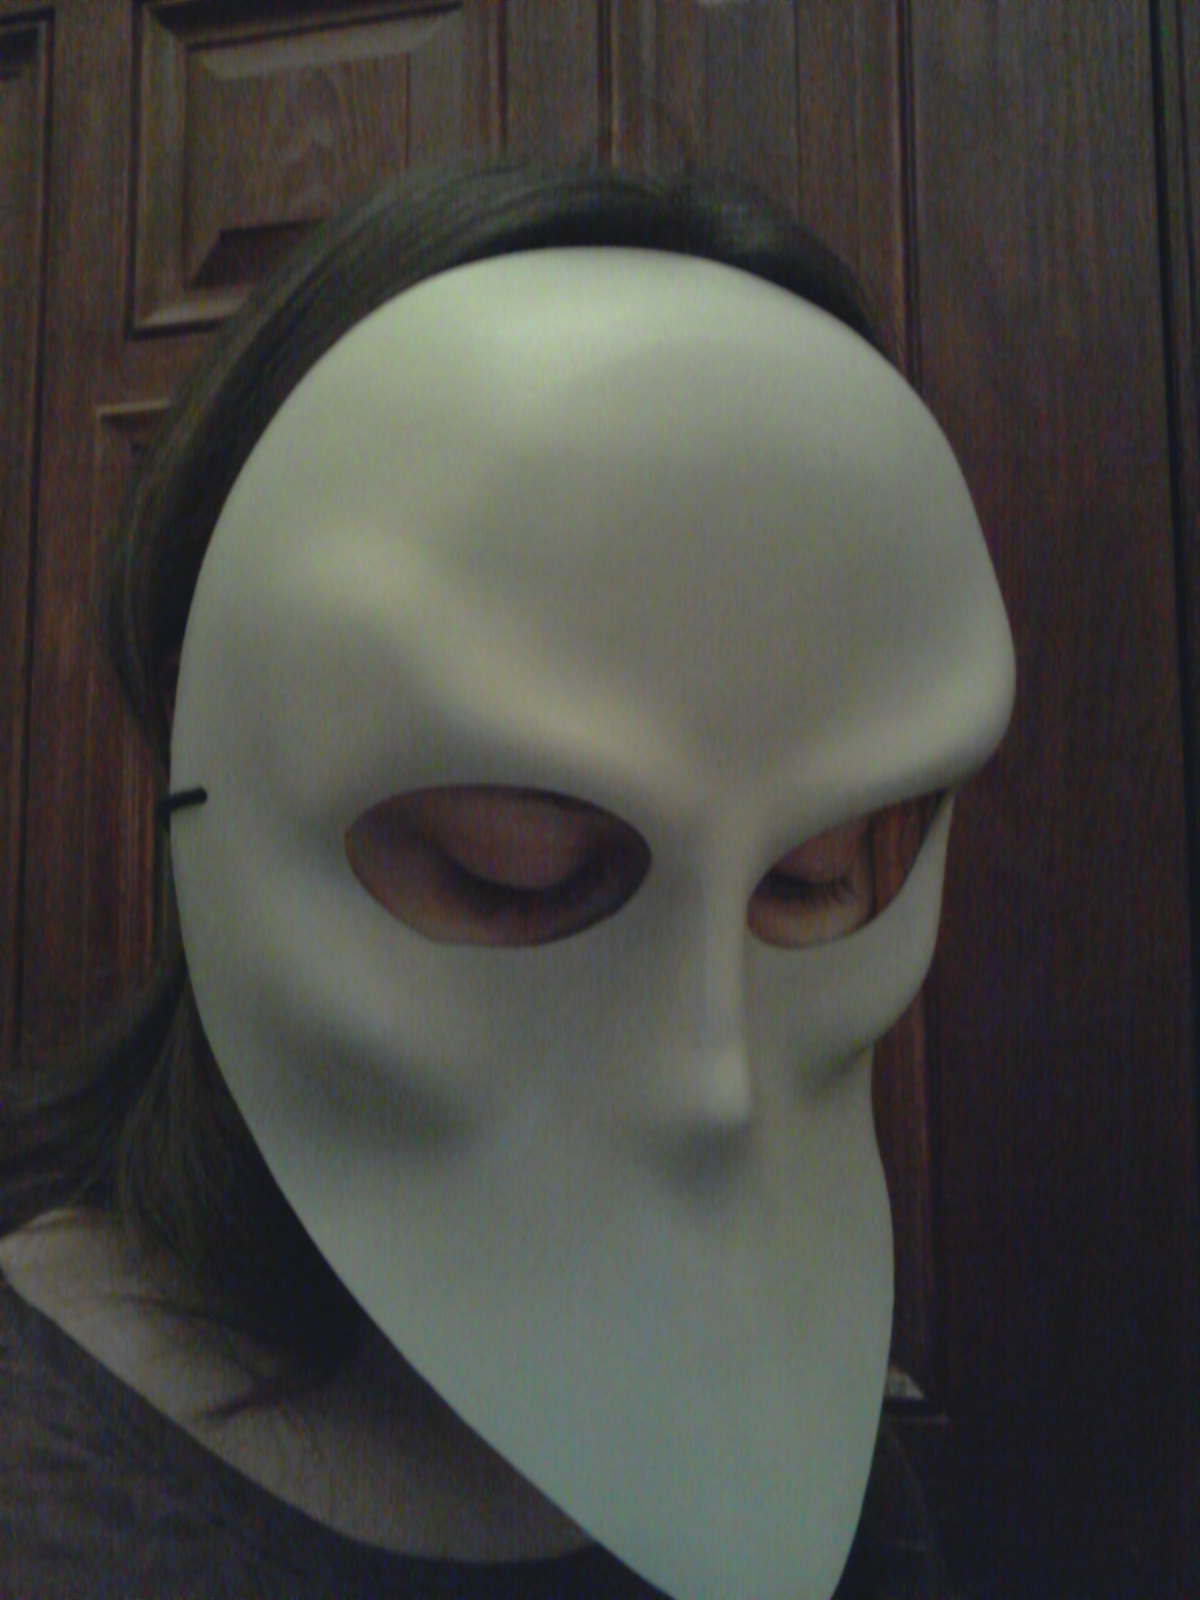 Sleep No More Masks http://practicalfreespirit.com/2012/11/15/the-spaces-in-between/